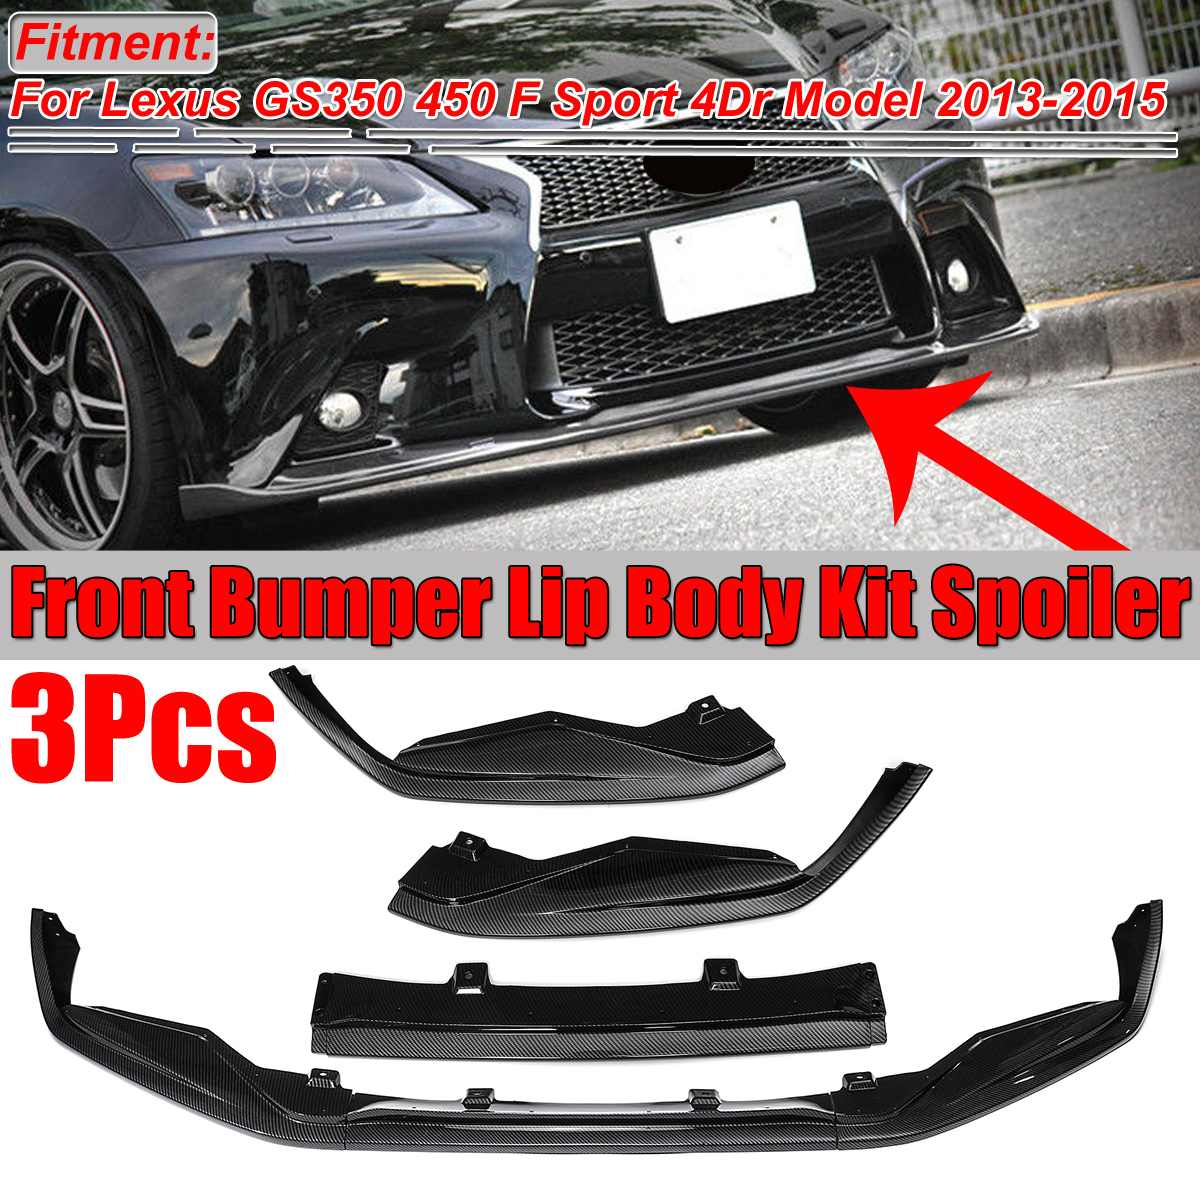 <font><b>GS350</b></font> 450 Carbon Fiber Look Car Front Bumper Lip Splitter Spoiler Diffuser For <font><b>Lexus</b></font> <font><b>GS350</b></font> 450 F Sport 4Dr Model 2013 <font><b>2014</b></font> 2015 image